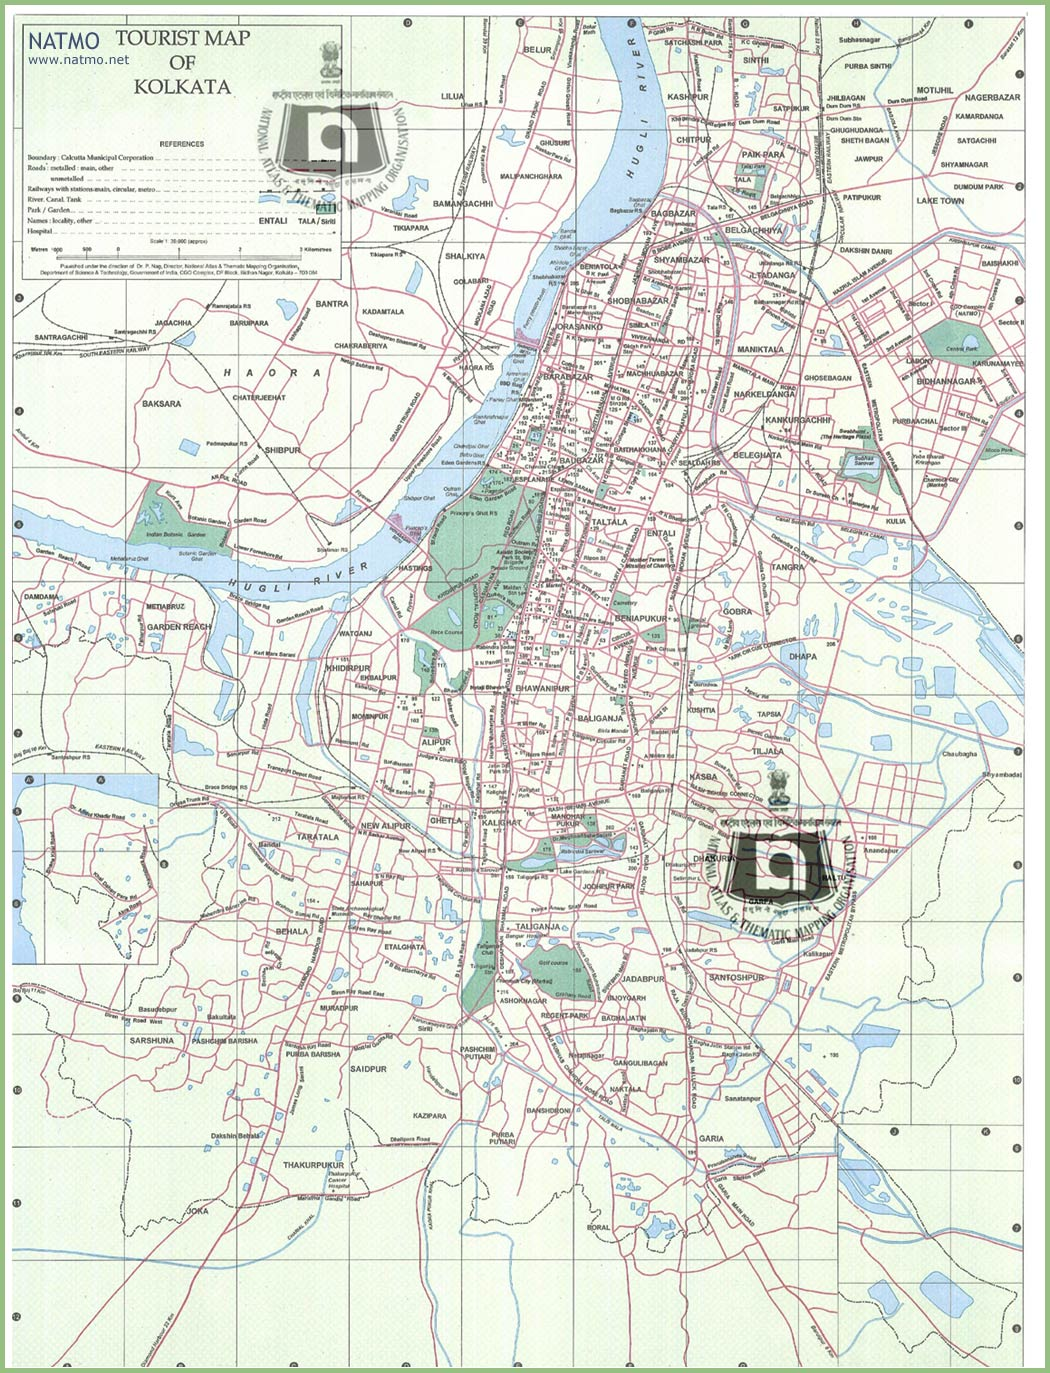 Did the map of Kolkata ab